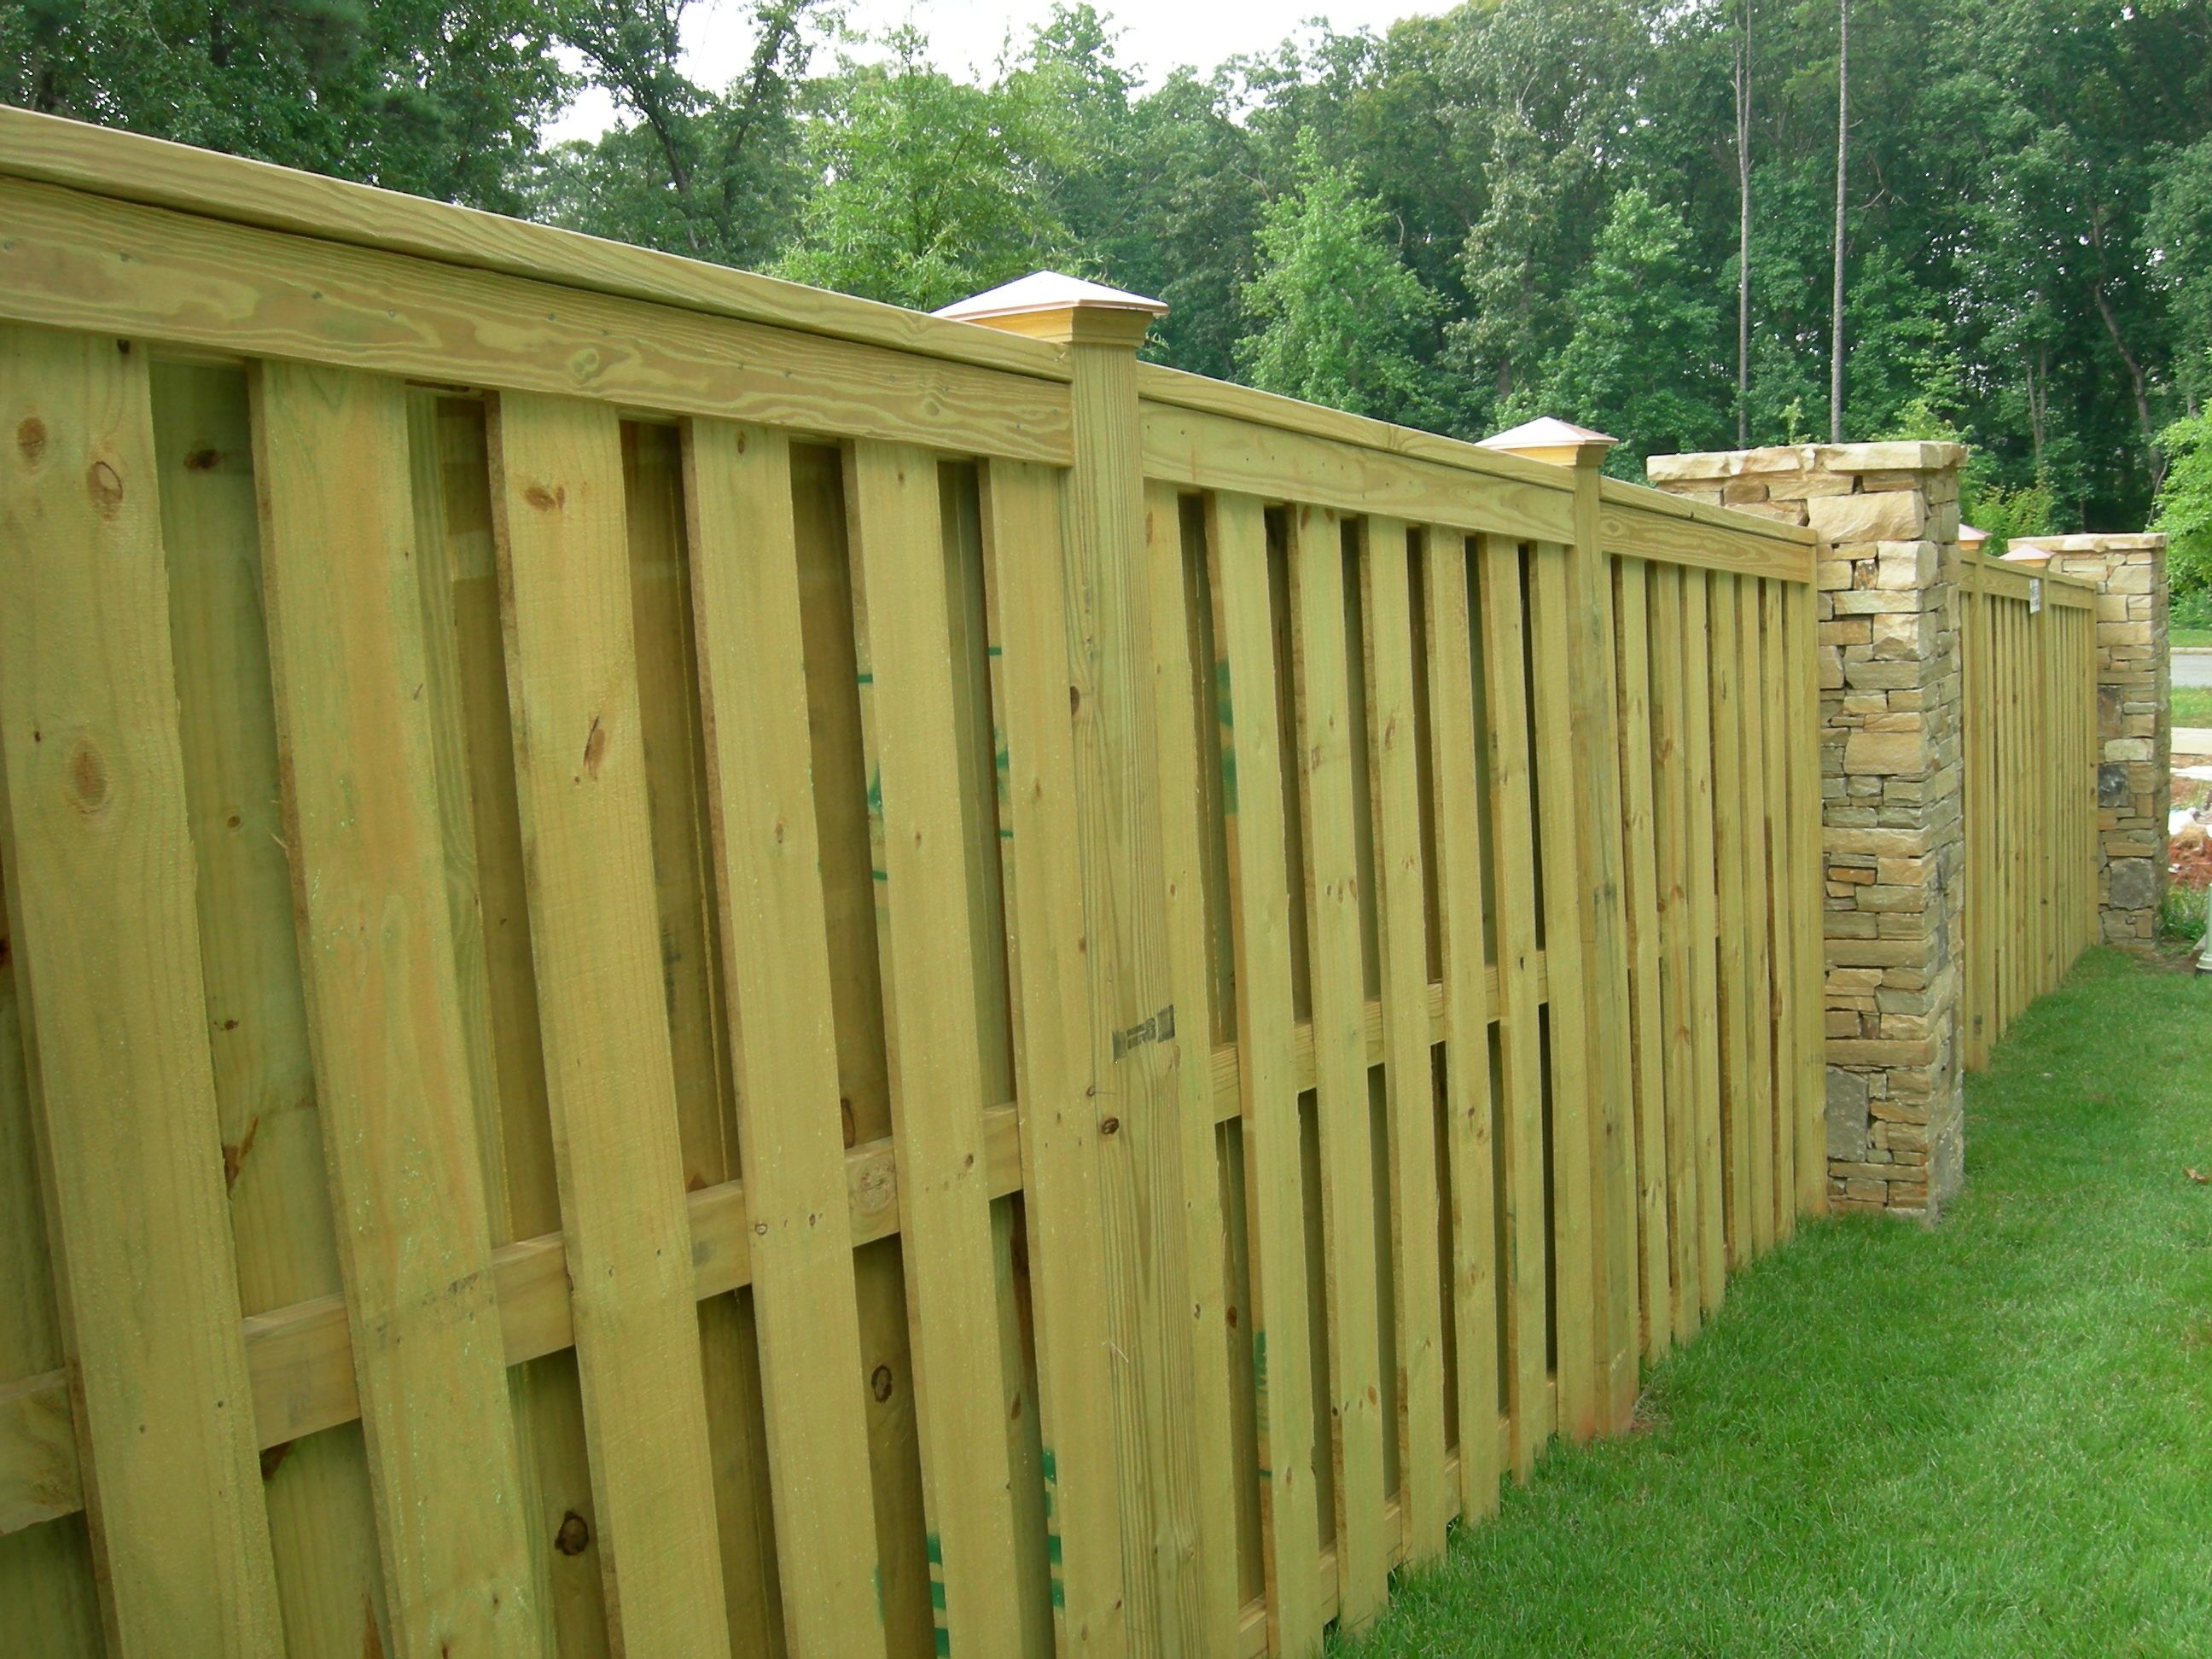 30 best fence images on pinterest fence ideas garden fences and shadow box fence with trimmed top baanklon Gallery